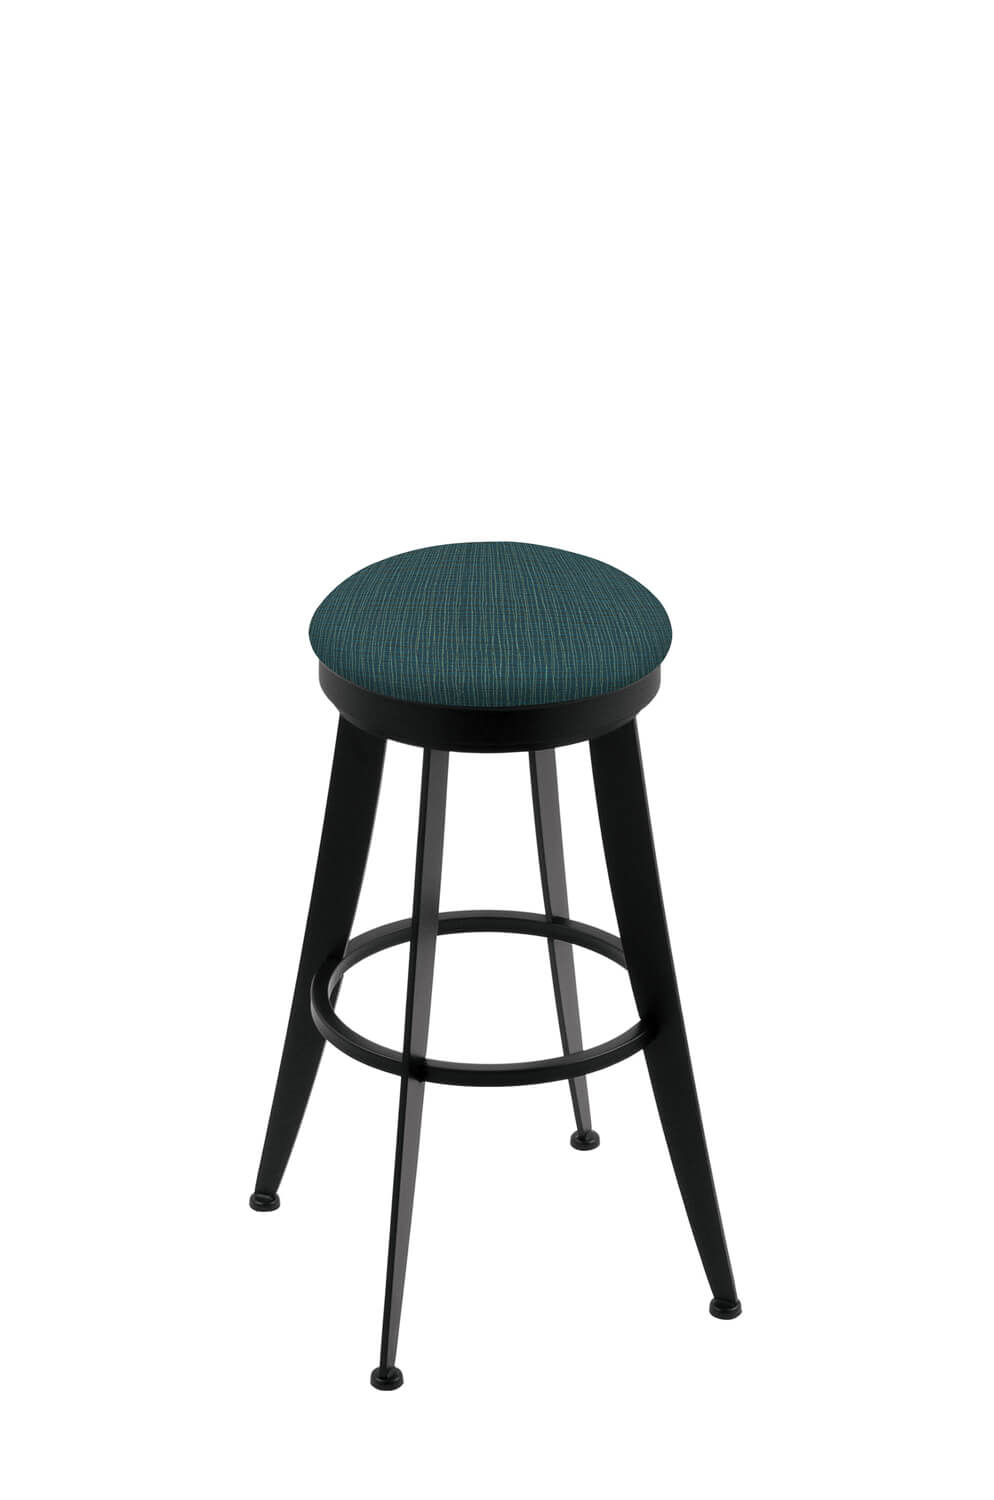 Fine 900 Laser Backless Swivel Bar Stool 30 Uwap Interior Chair Design Uwaporg